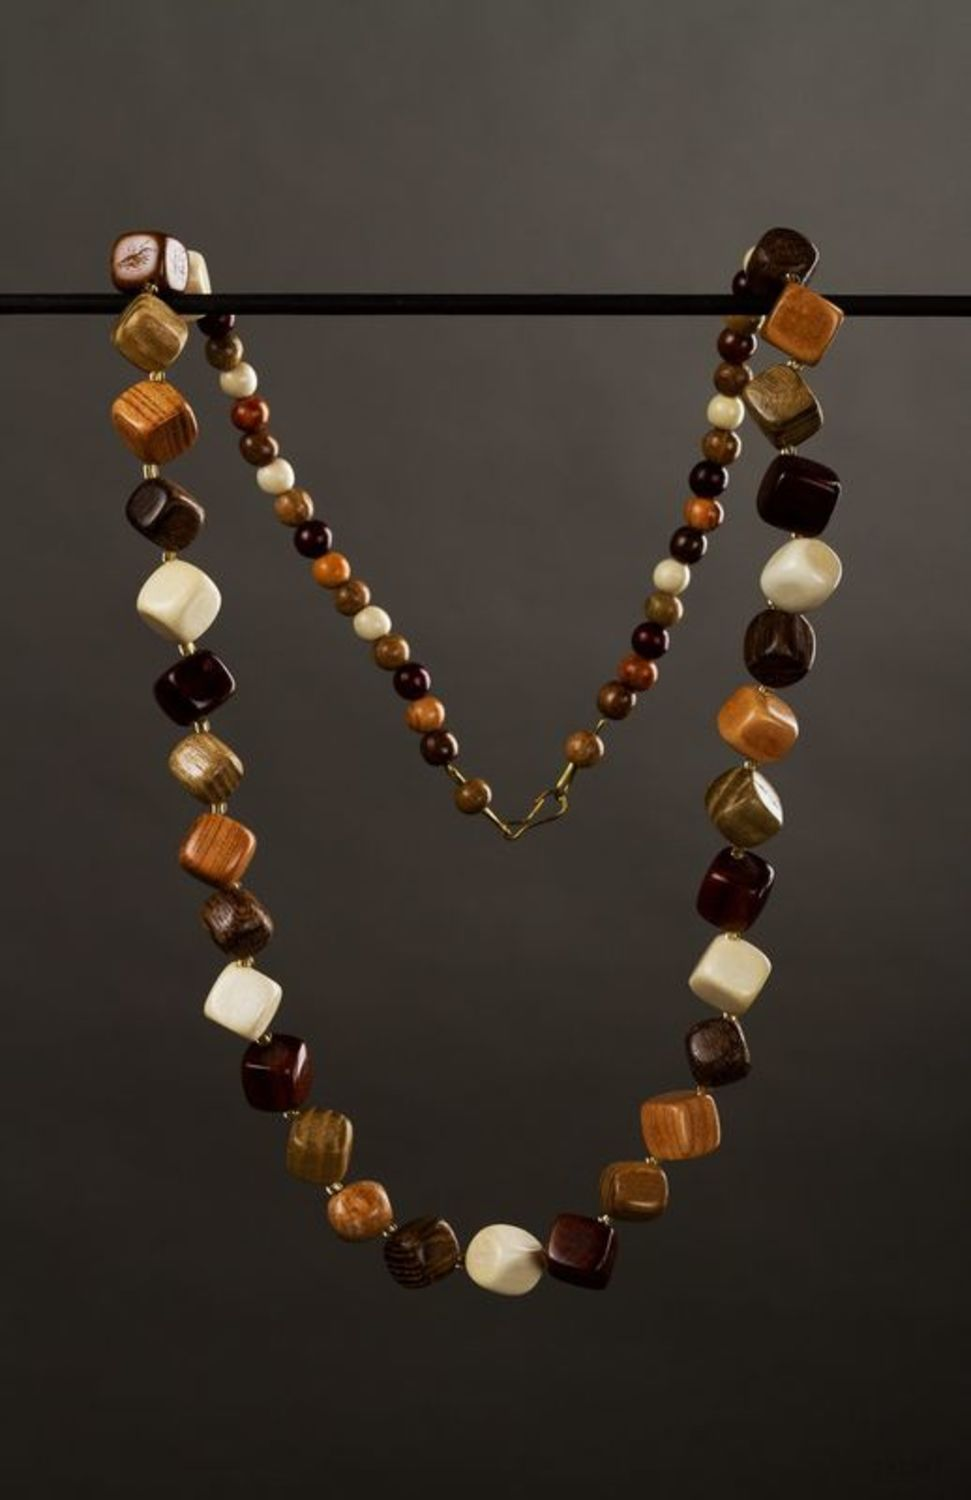 Wooden handmade necklace photo 1